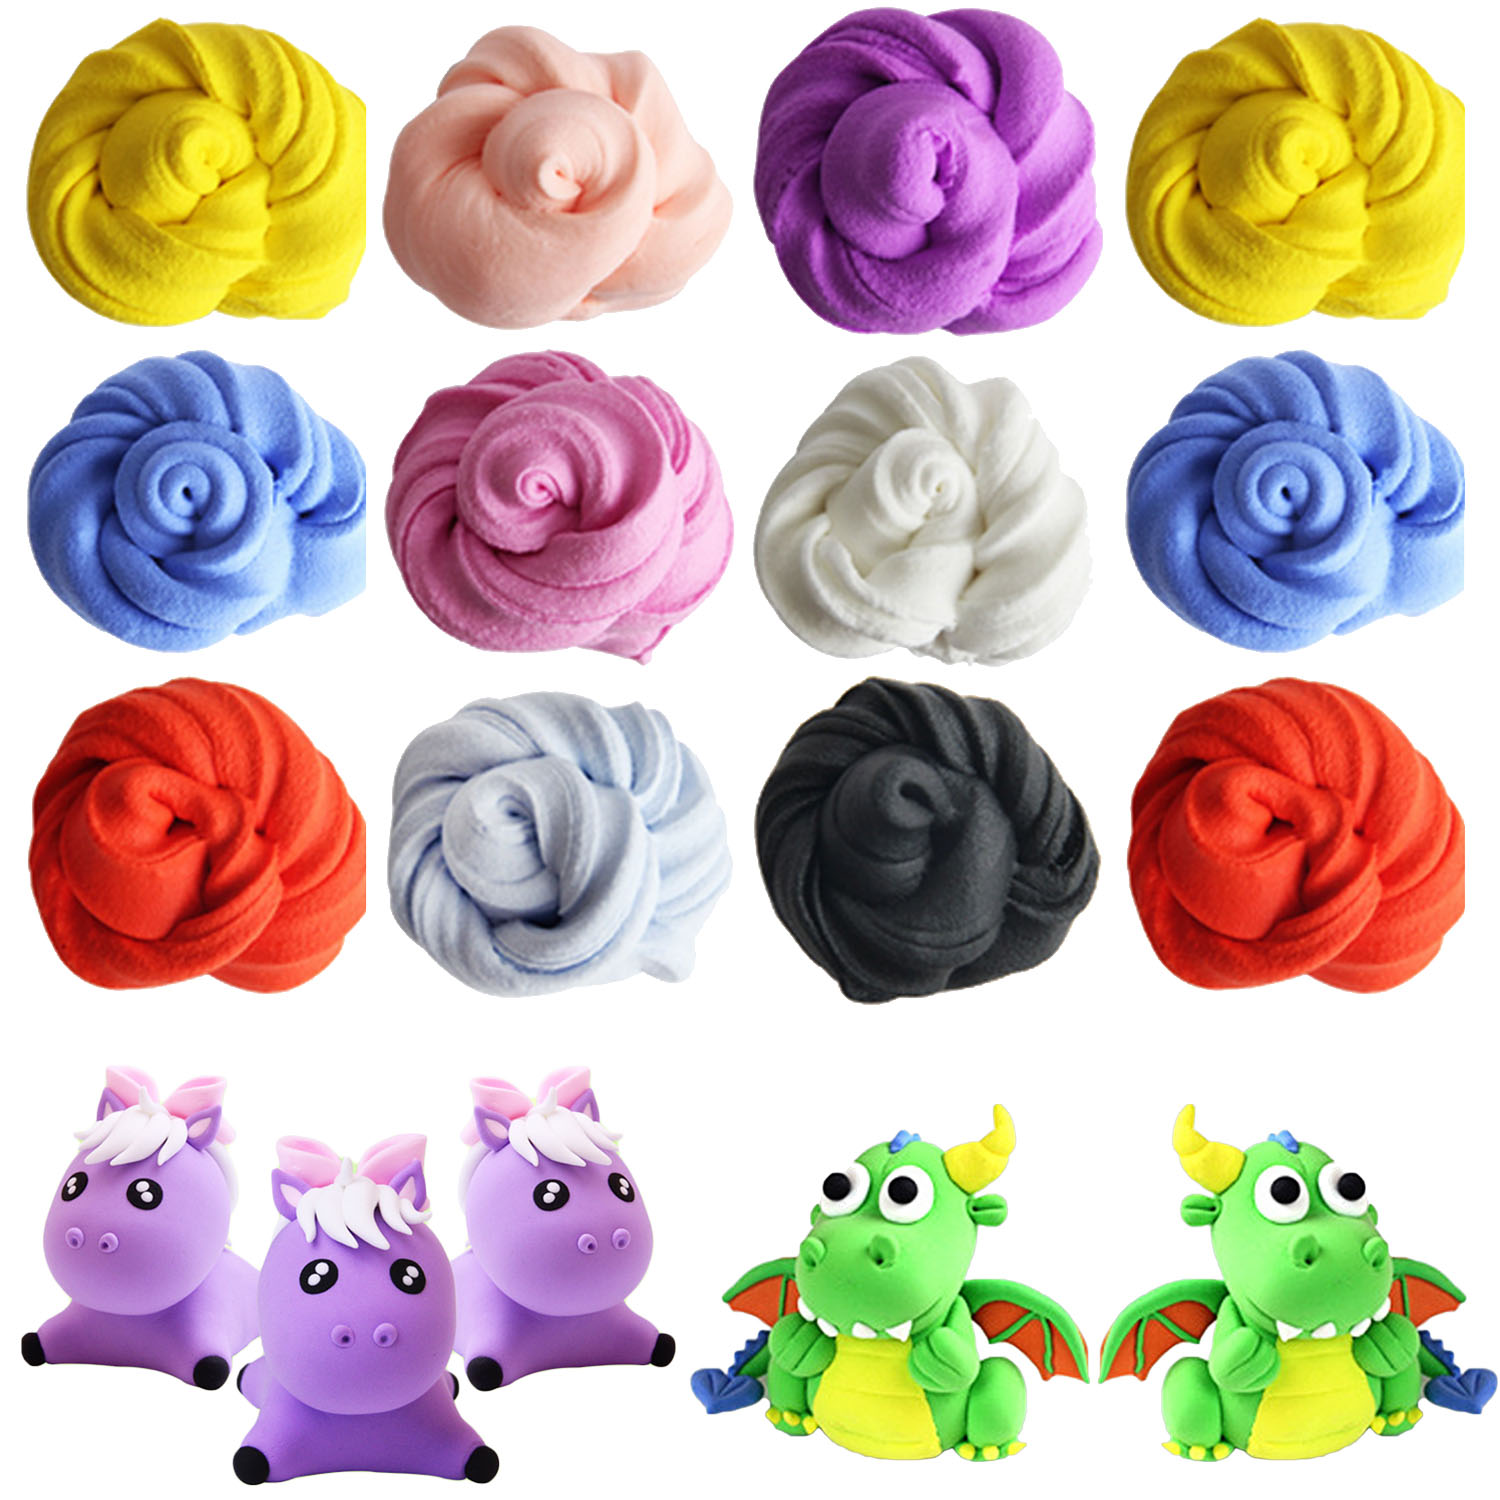 6 PCS Assorted Colors Soft Crystal Kids Plasticine Slime Putty Toy Clay Rubber Mud Set For DIY Crafts School Projects